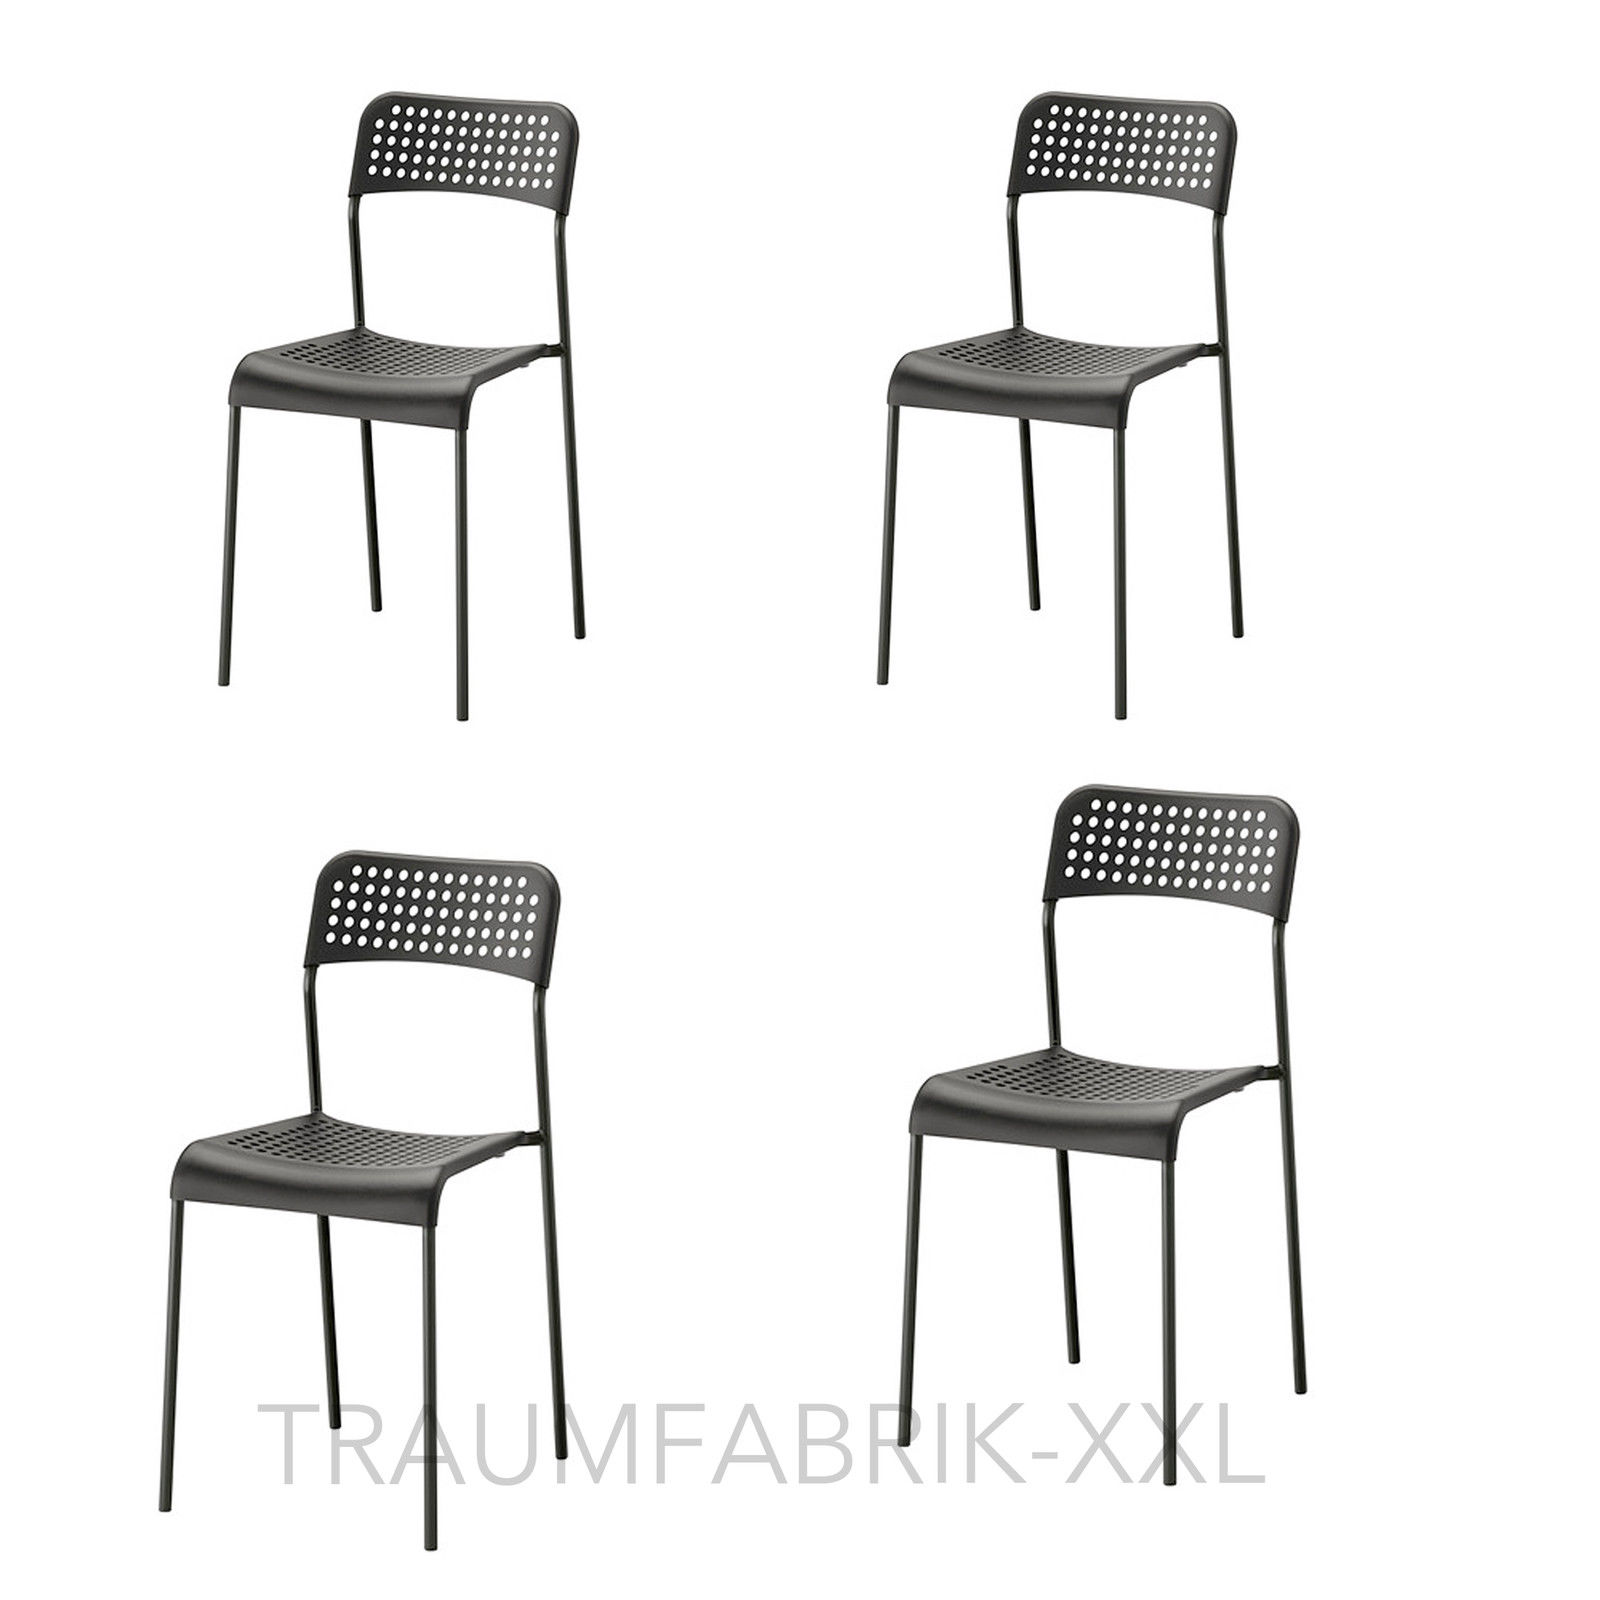 kchenstuhl metall gallery of ikea tobias chair fresh kchenstuhl ikea perfect latest dekoria. Black Bedroom Furniture Sets. Home Design Ideas